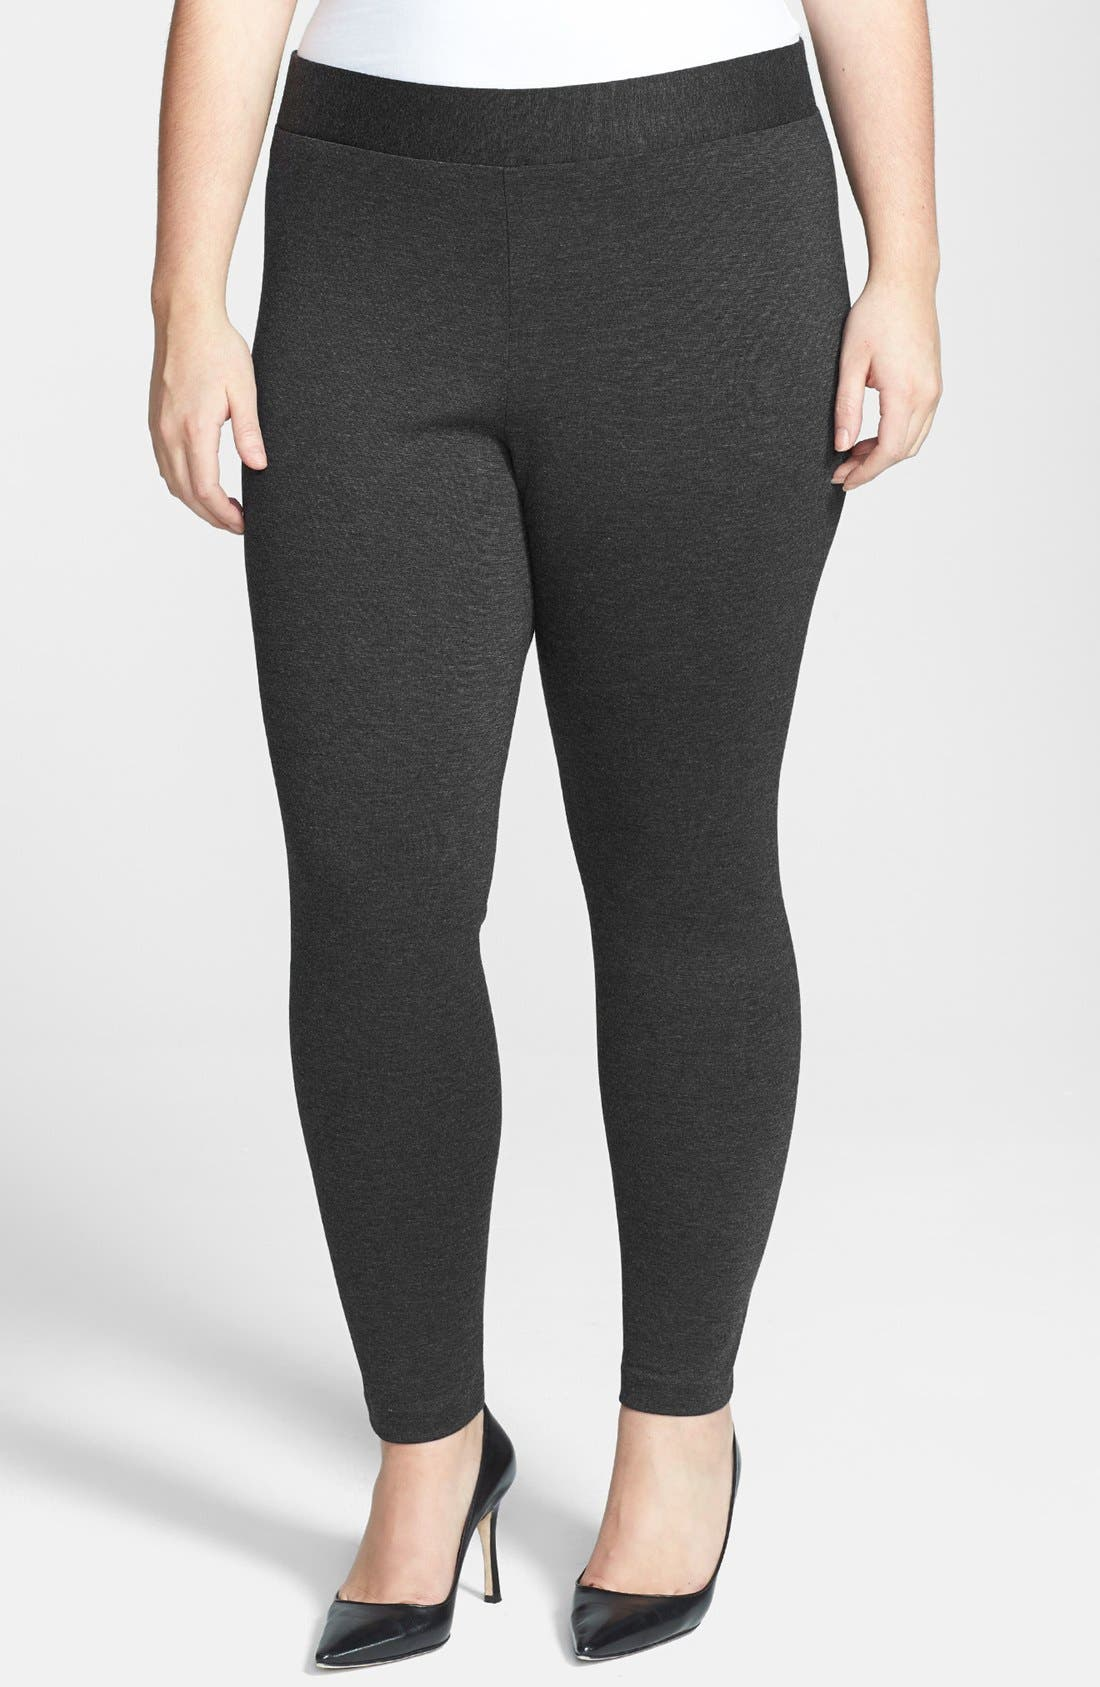 Alternate Image 1 Selected - Two by Vince Camuto Leggings (Plus Size)